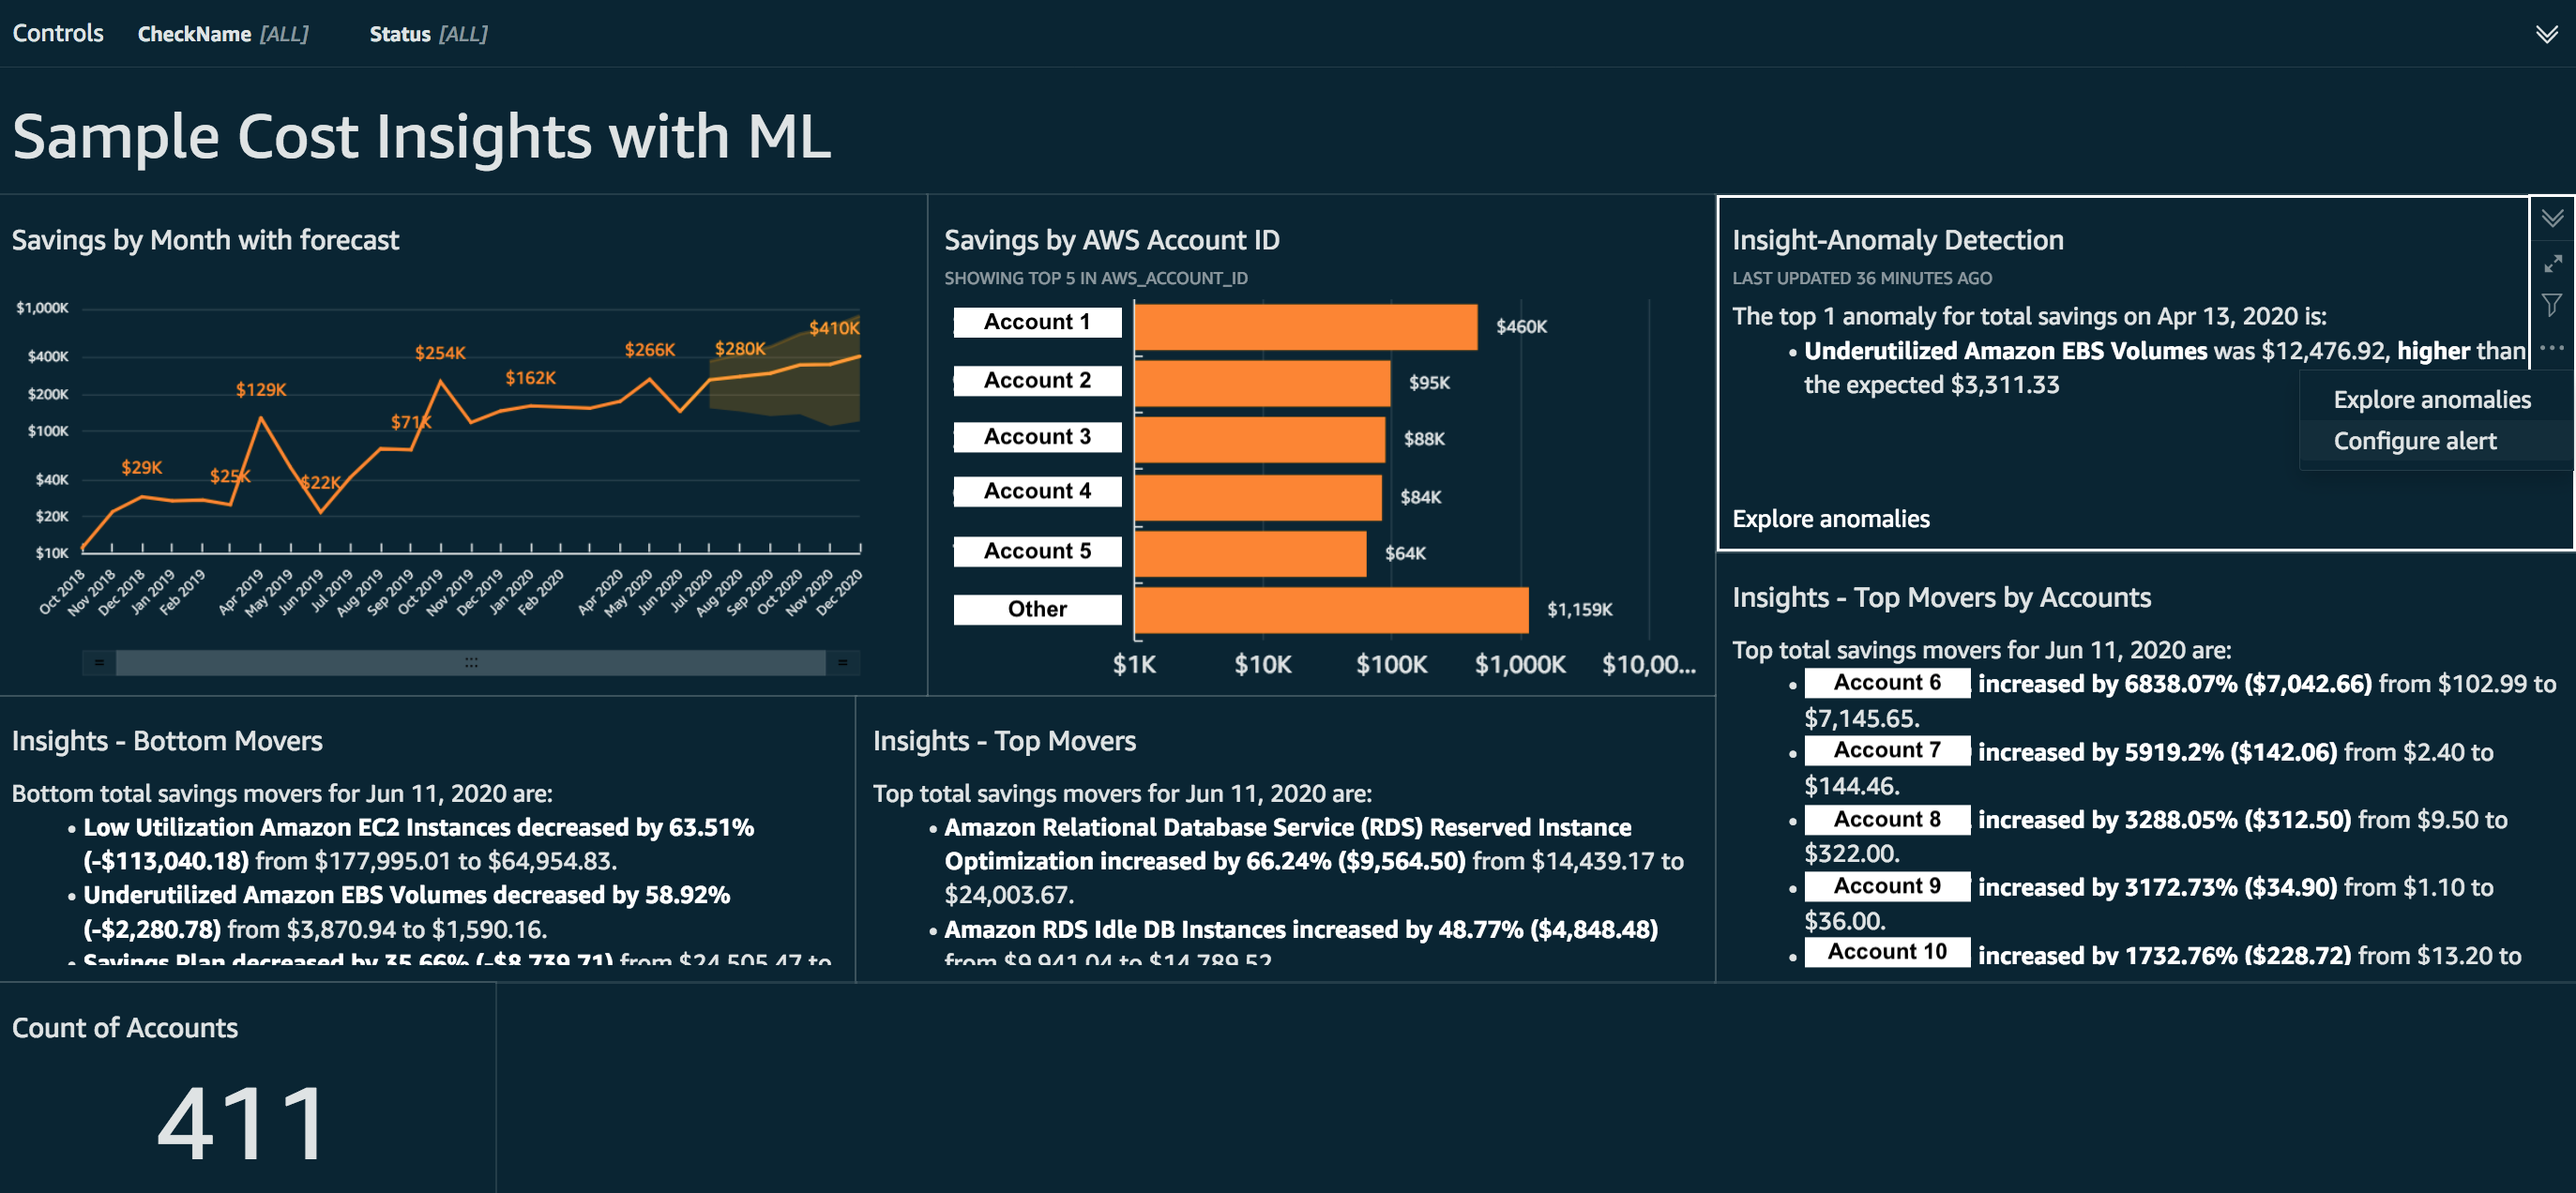 Machine Learning based QuickSight dashboard